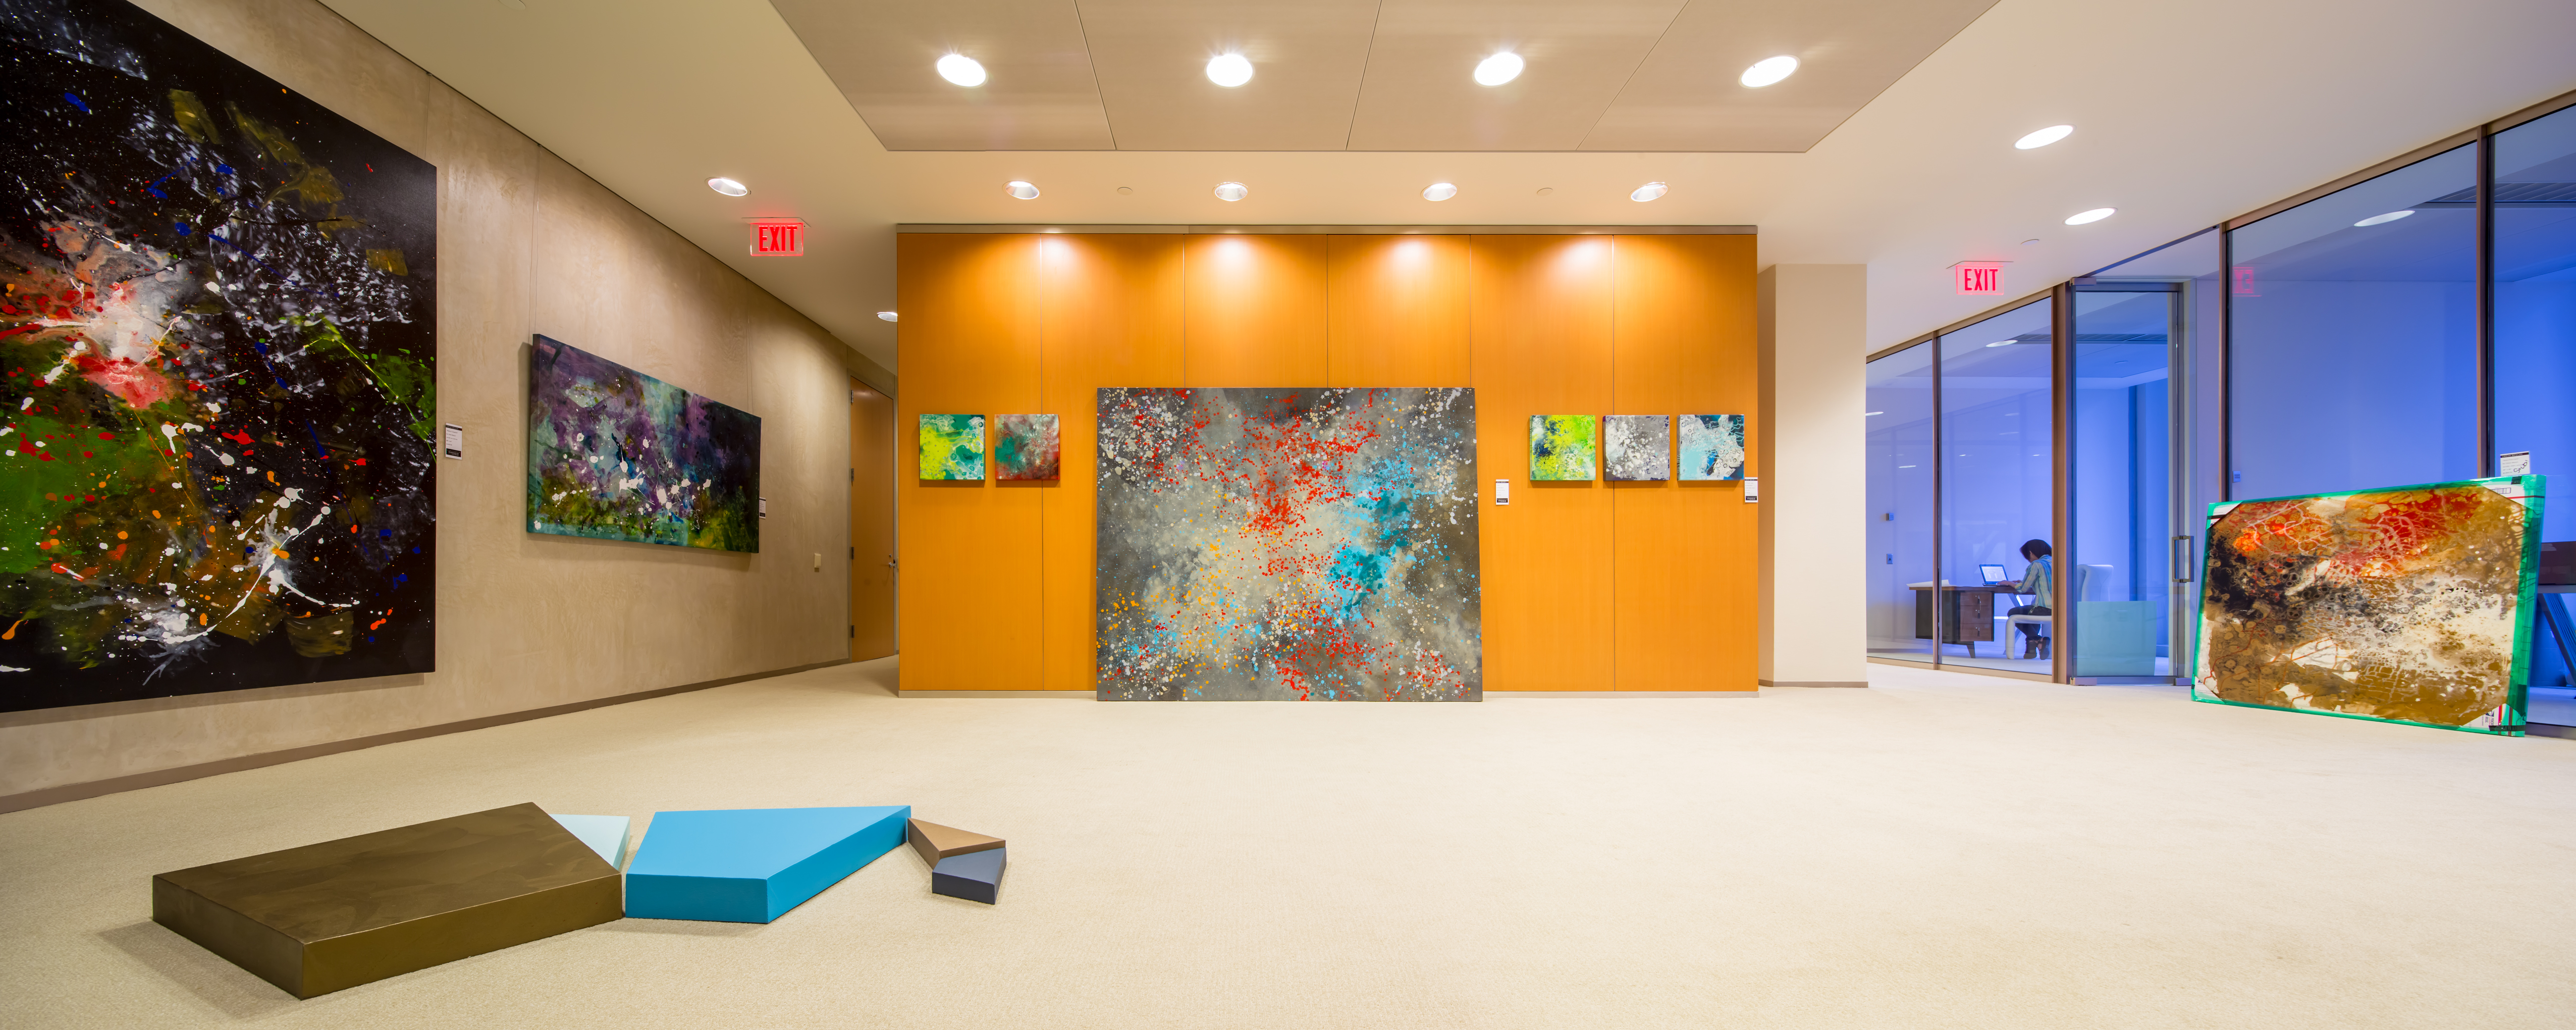 Great New Images of the Gallery+Studio